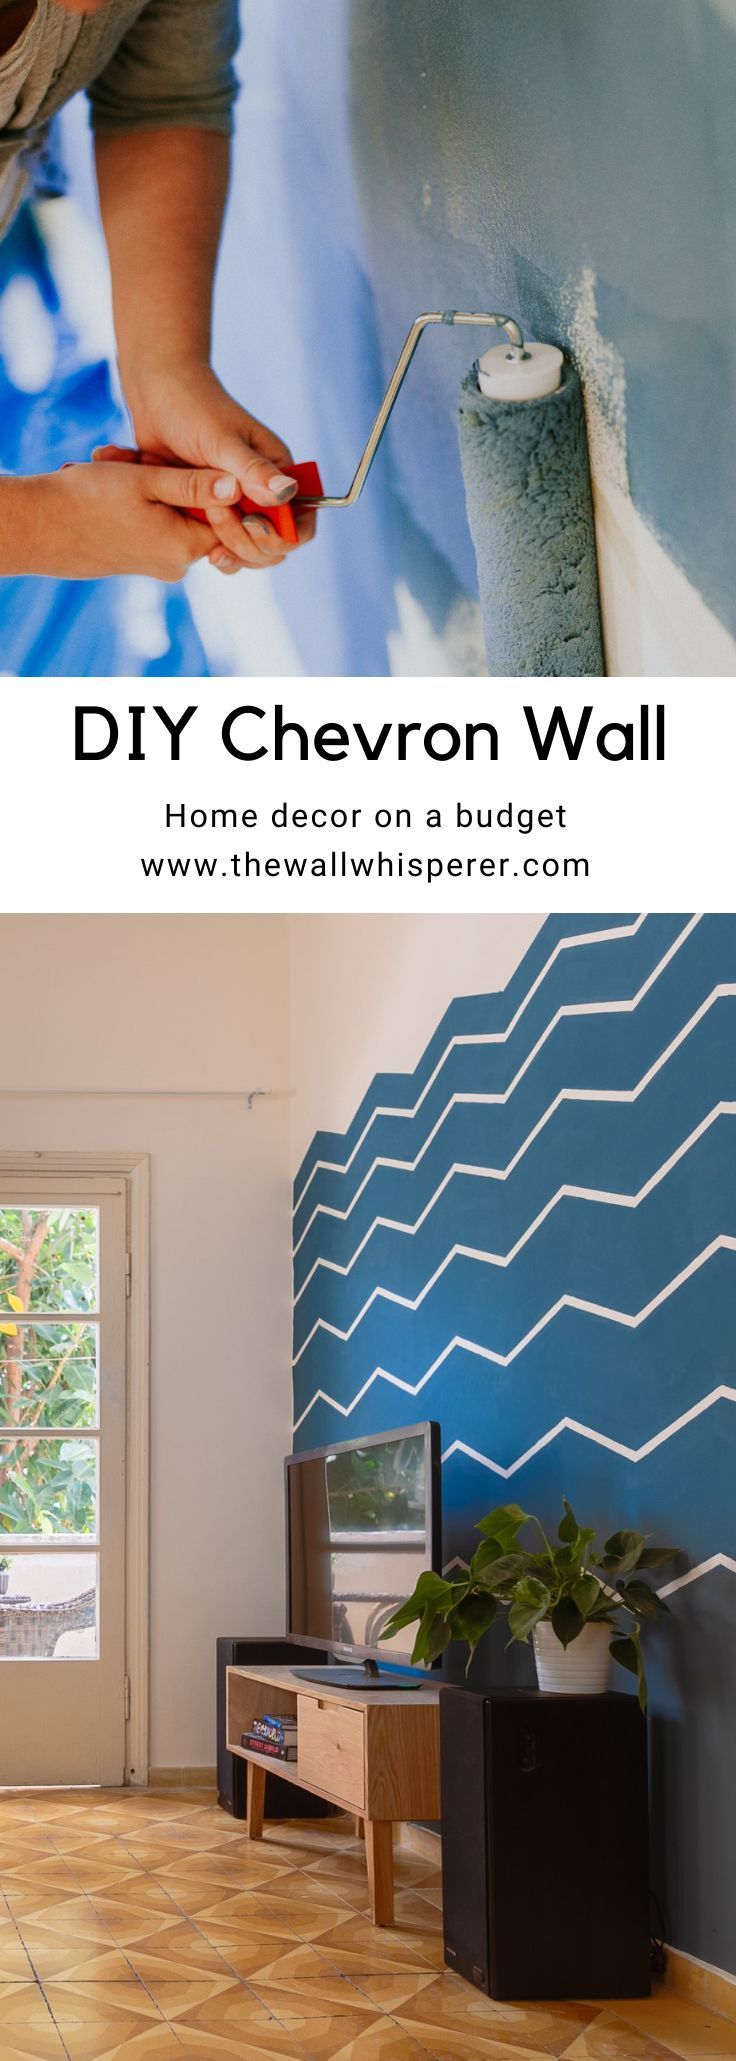 Super clear tutorial. How to make an accent wall in your living room. Easy Chevron pattern to make a zig-zag wall. Blue accent TV wall.  #diyhomedecor #diyhomestyling #pantone2020 #accentwall #homeprojects